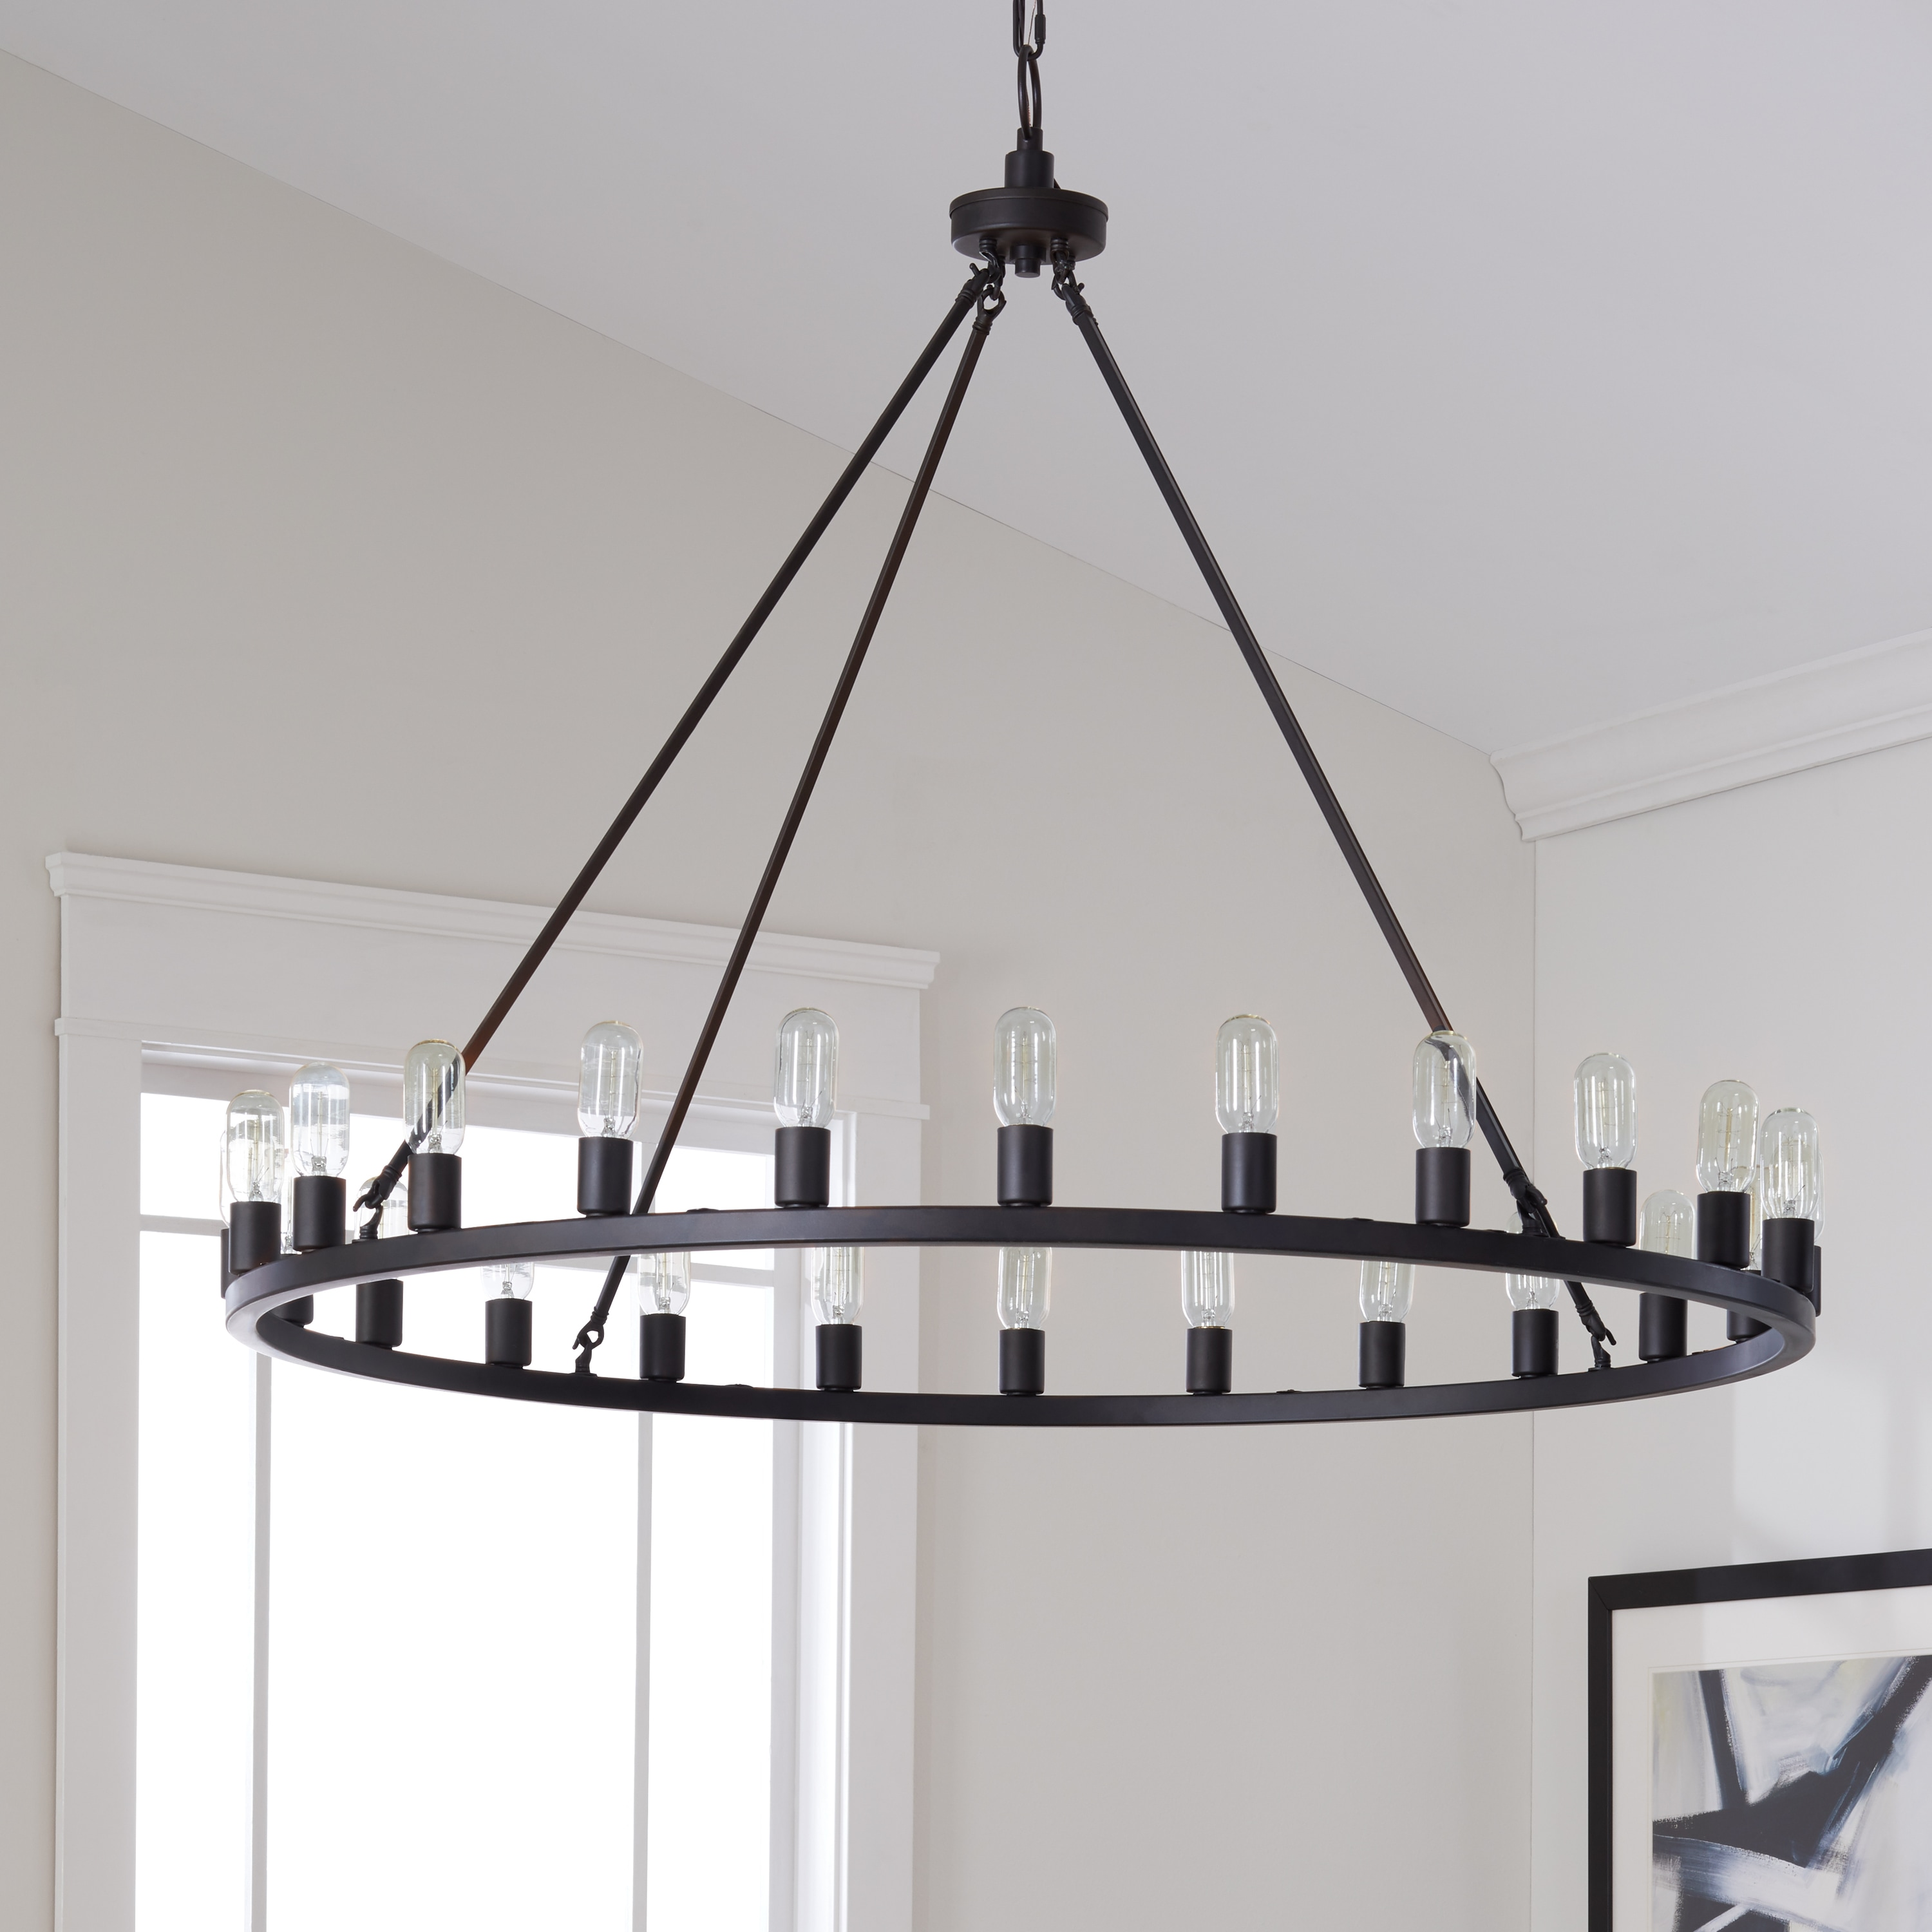 Farmhouse lighting ceiling fans